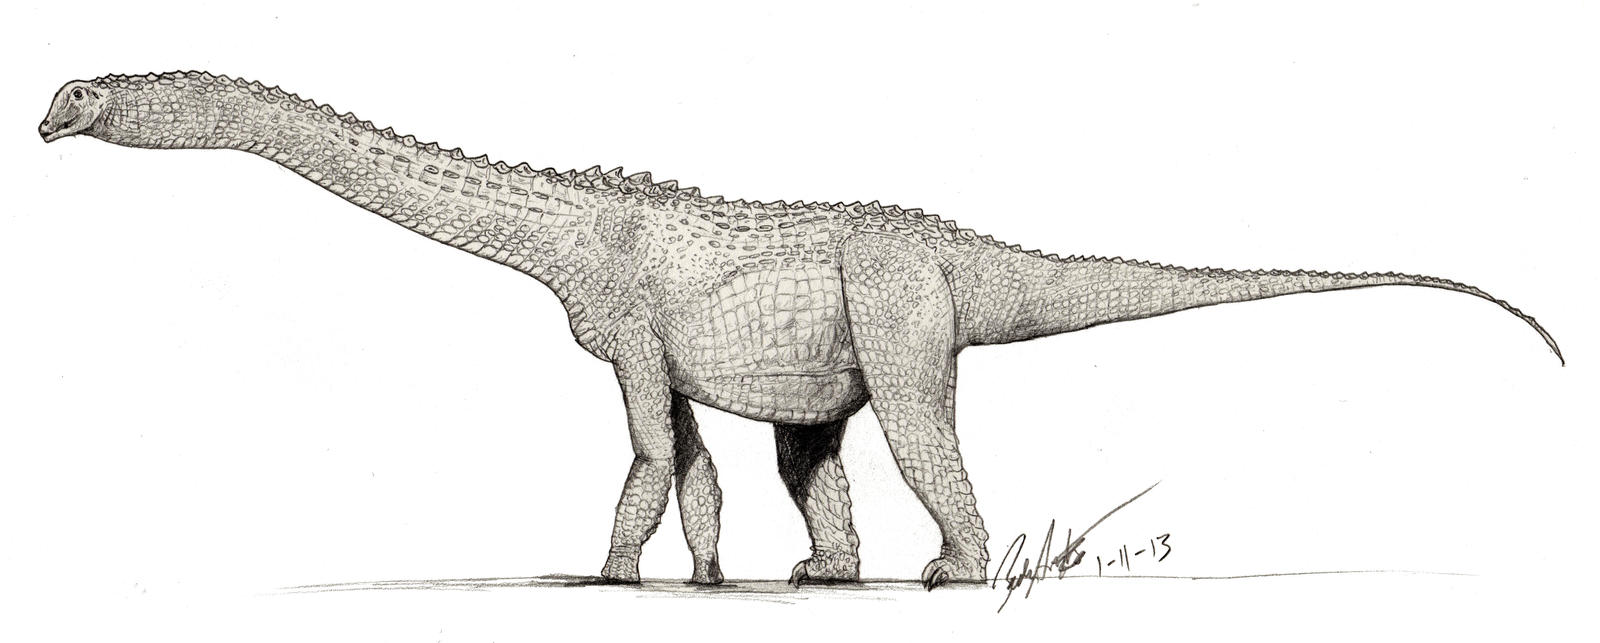 Alamosaurus drawing with croc scales